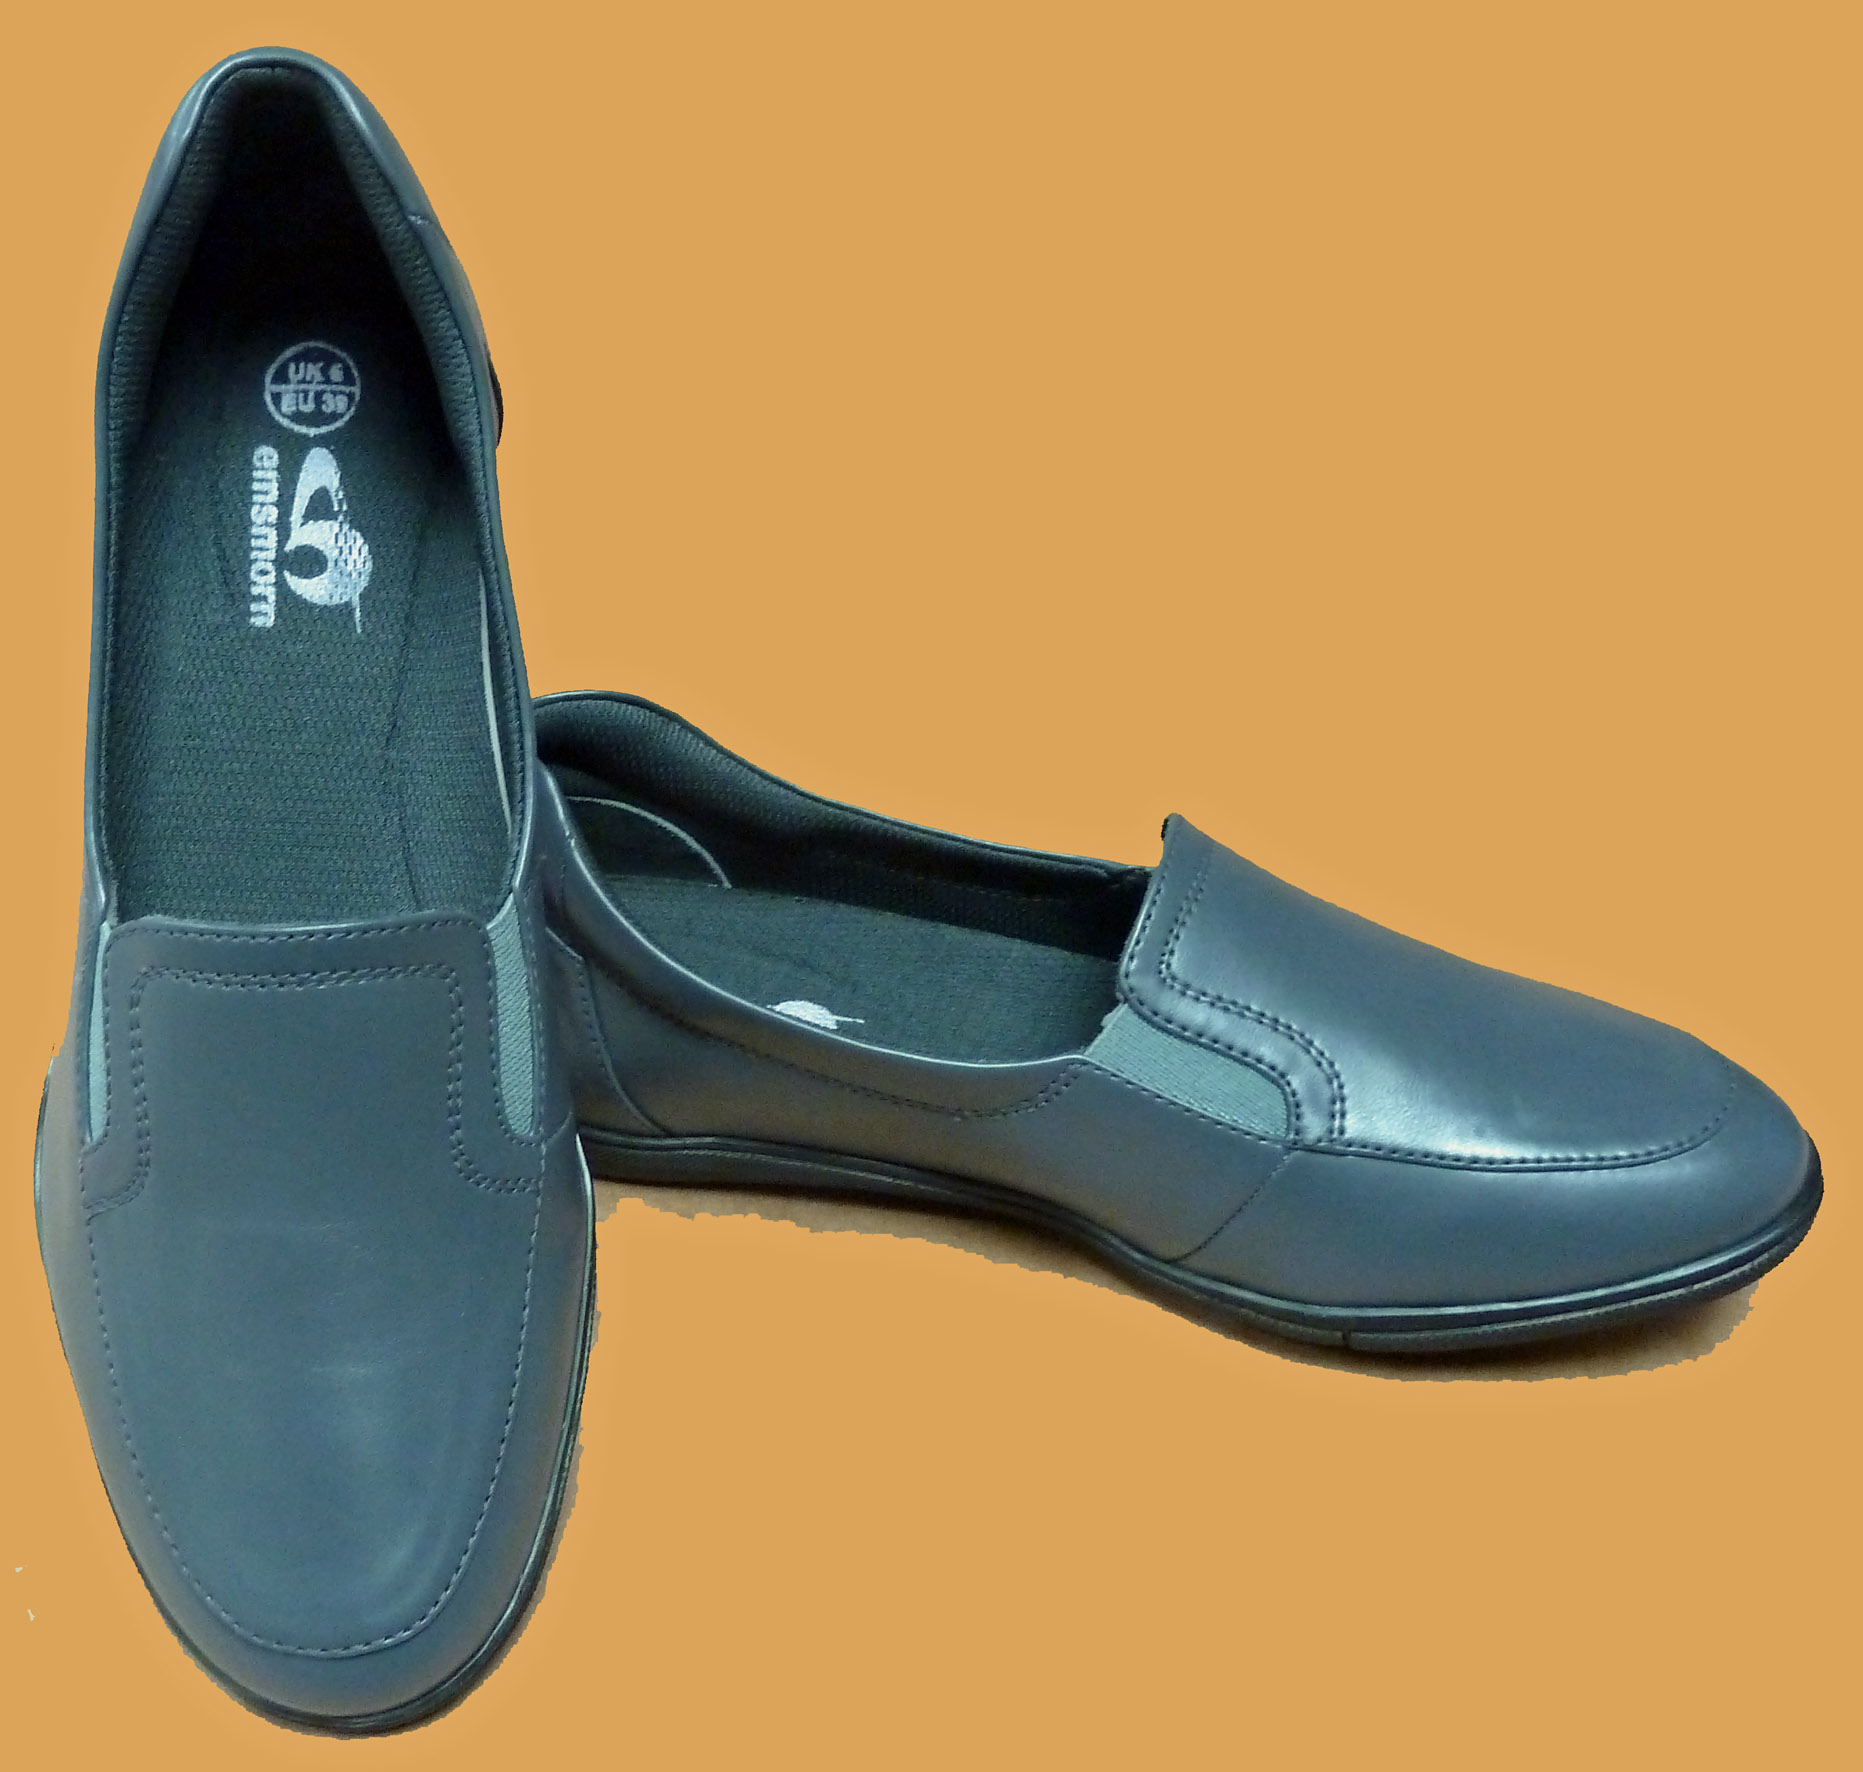 Emsmorn Zara Slip-on Shoes